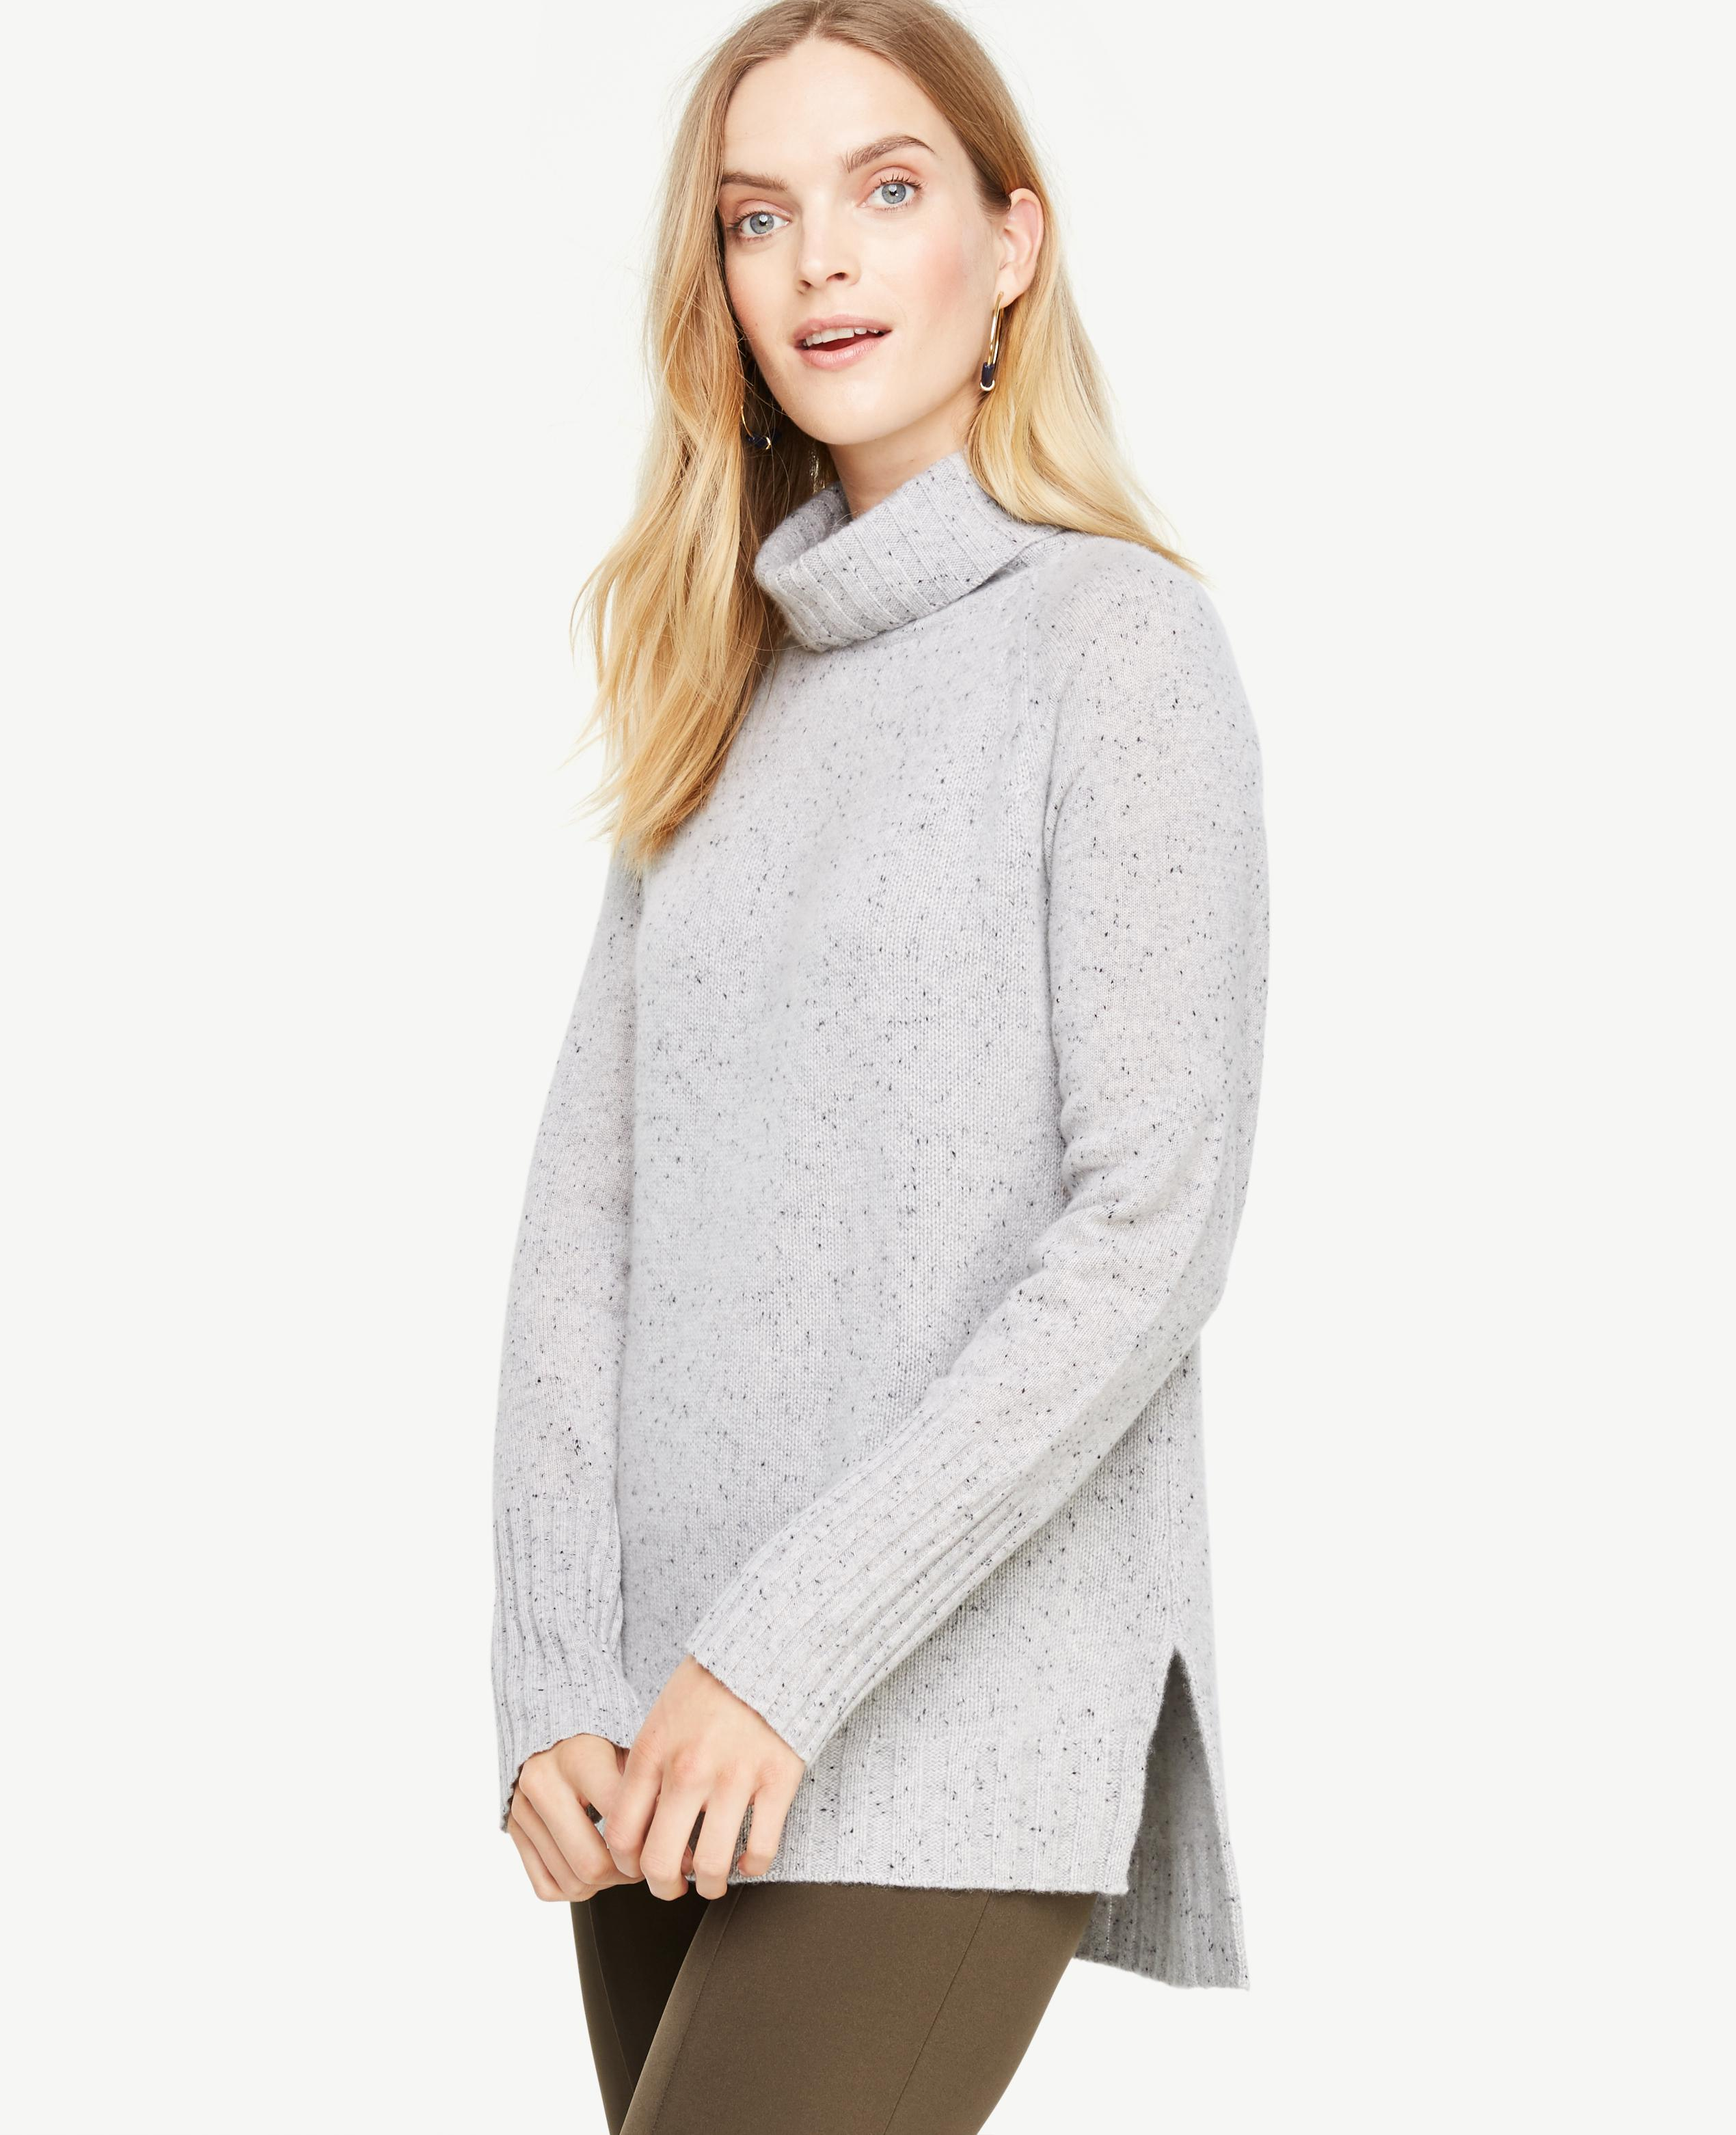 Ann taylor Cashmere Flecked Turtleneck Tunic Sweater in Gray | Lyst